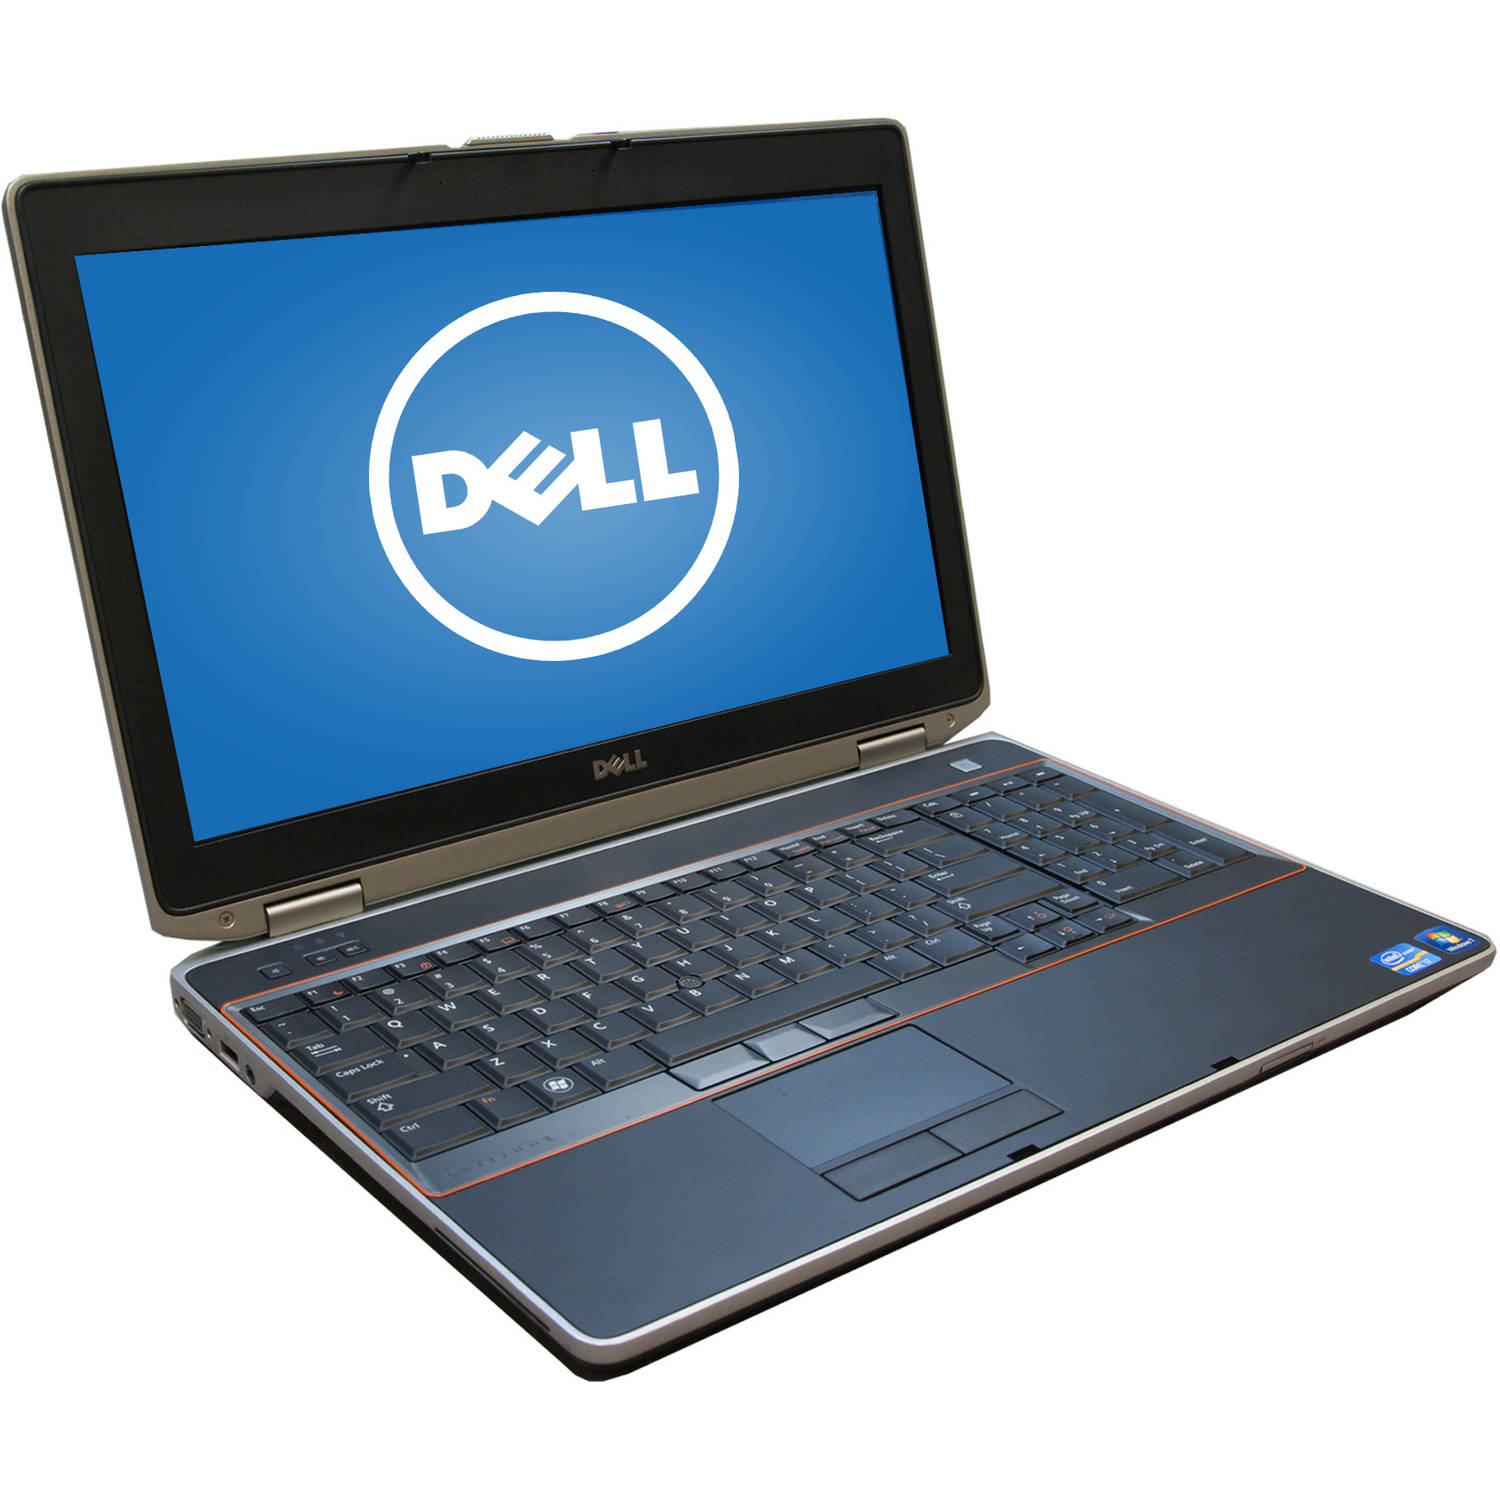 "Refurbished Dell 15.6"" Latitude E6520 Laptop PC with Intel Core i5-2520M Processor, 6GB Memory, 500GB Hard Drive and Windows 10 Pro"